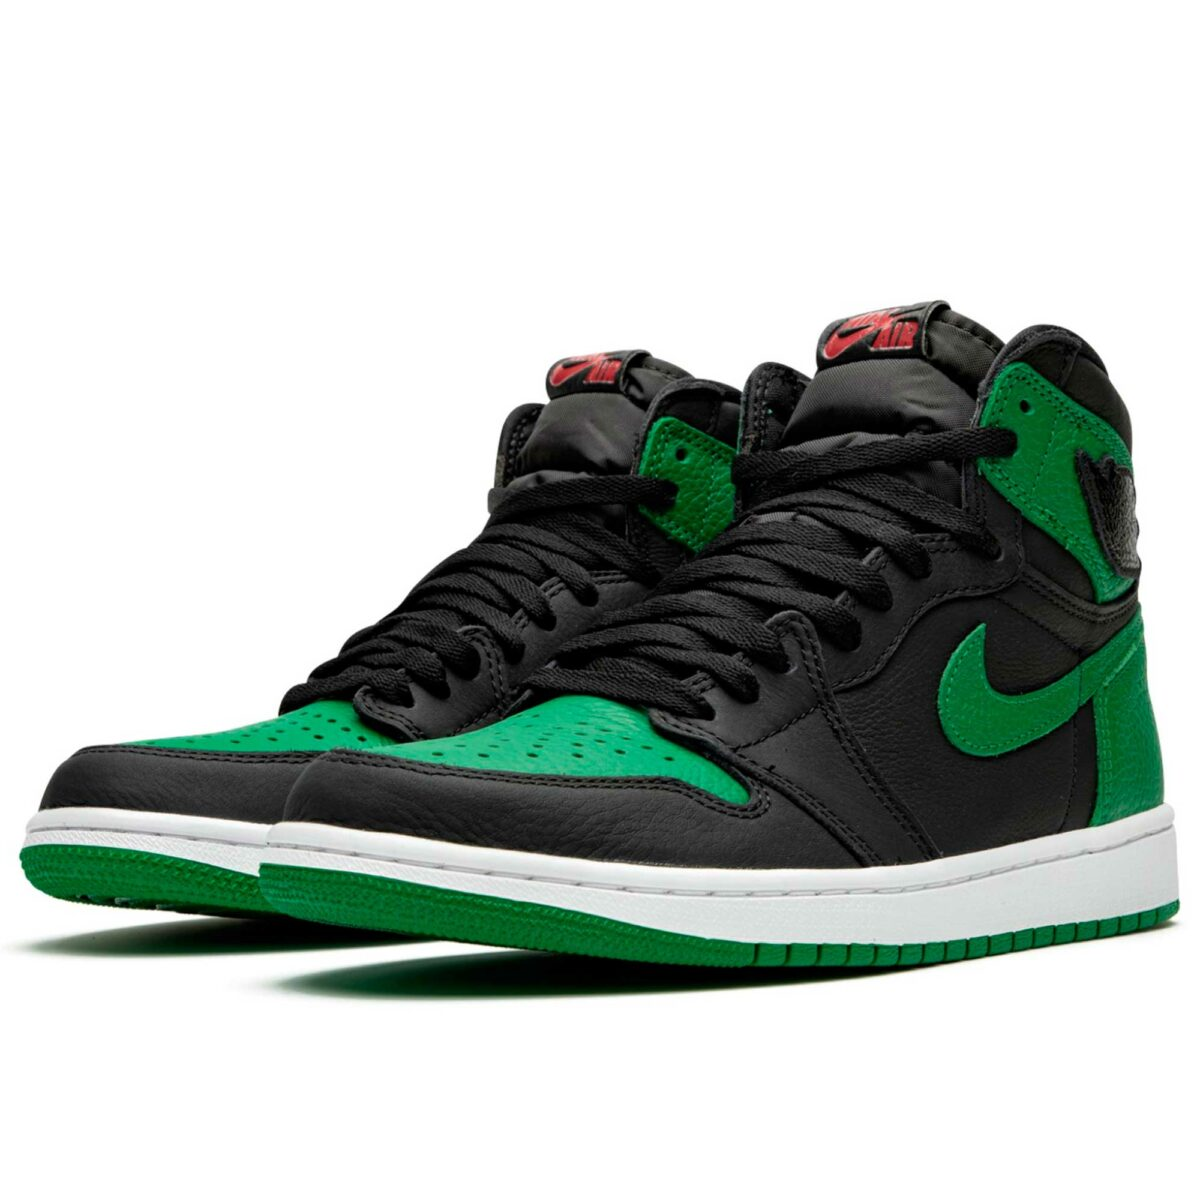 nike-air-jordan-1-retro-mid-pine-green-2.0-555088_030 купить